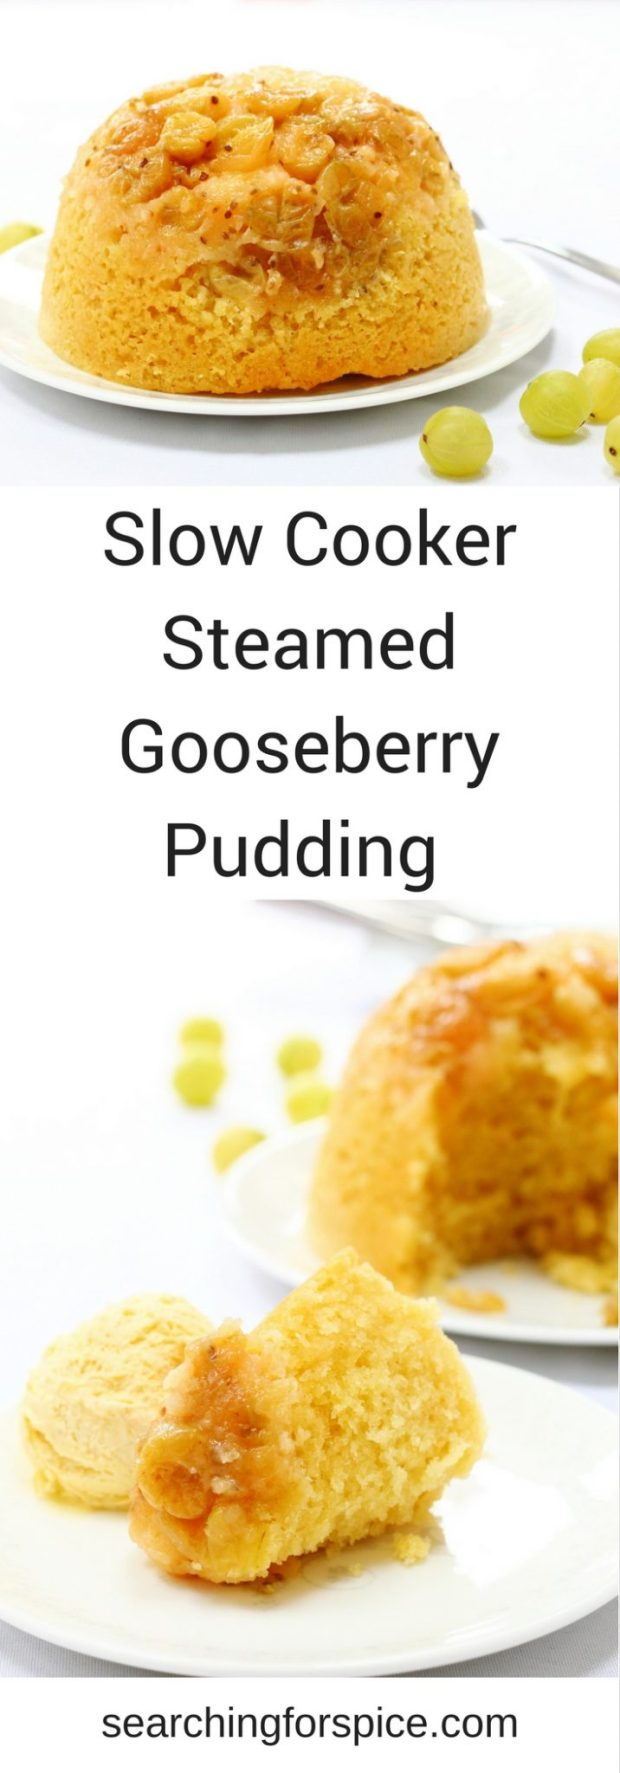 Comforting recipe for a slow cooker steamed gooseberry pudding. Perfect to make in summer with seasonal fruit as the slow cooker won't heat up your kitchen. If you can't find gooseberries, just replace with other seasonal fruit such as apples, plums or cherries.